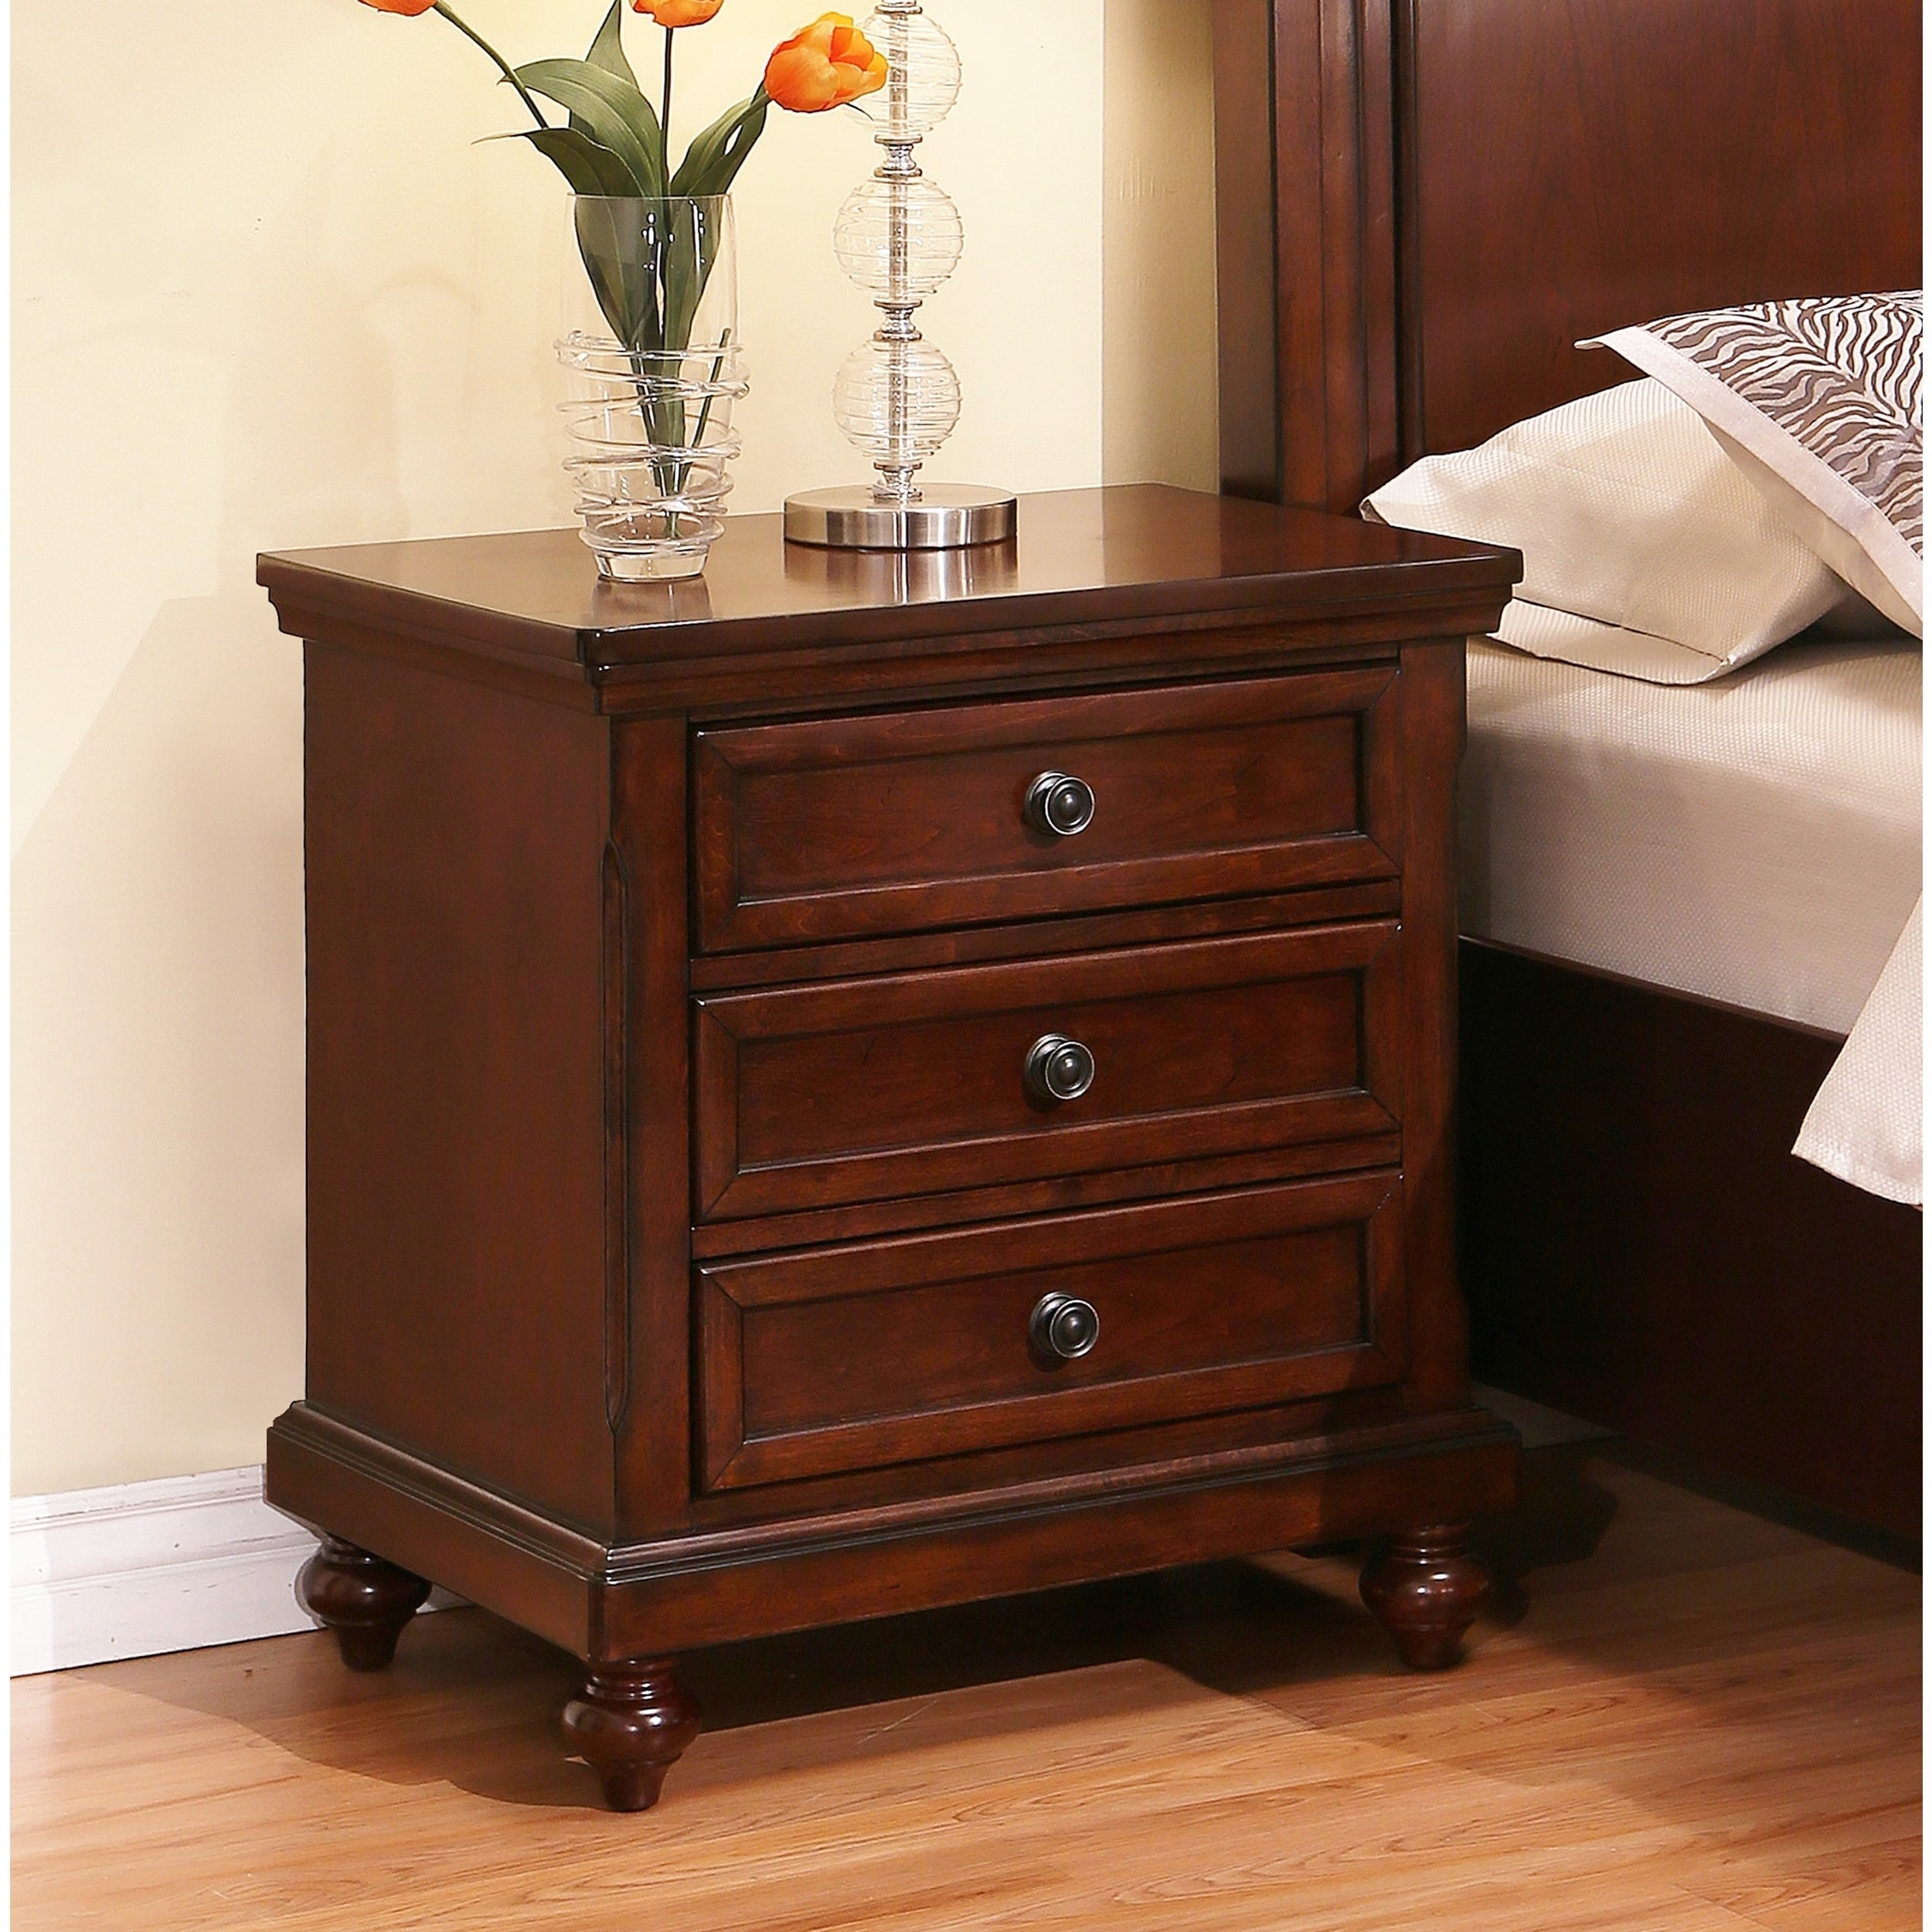 abbyson caprice cherry wood 3 drawer nightstand